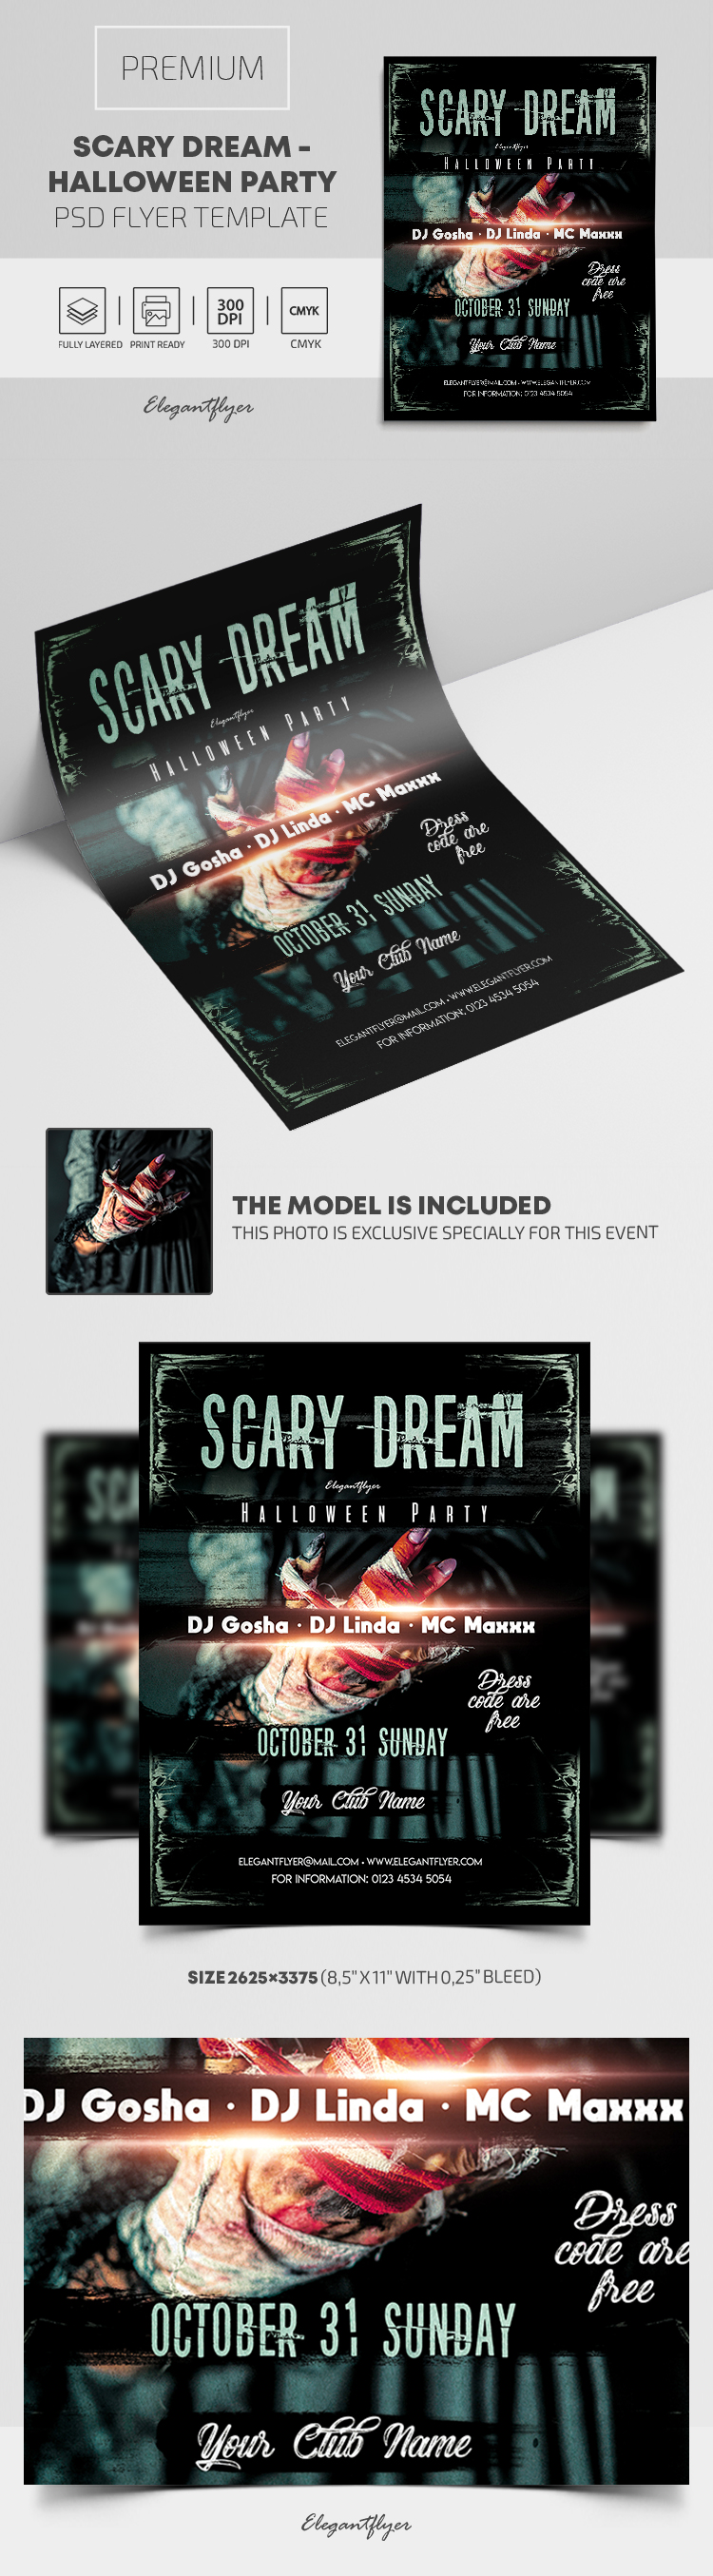 Scary Dream – Halloween Party – Premium PSD Flyer Template